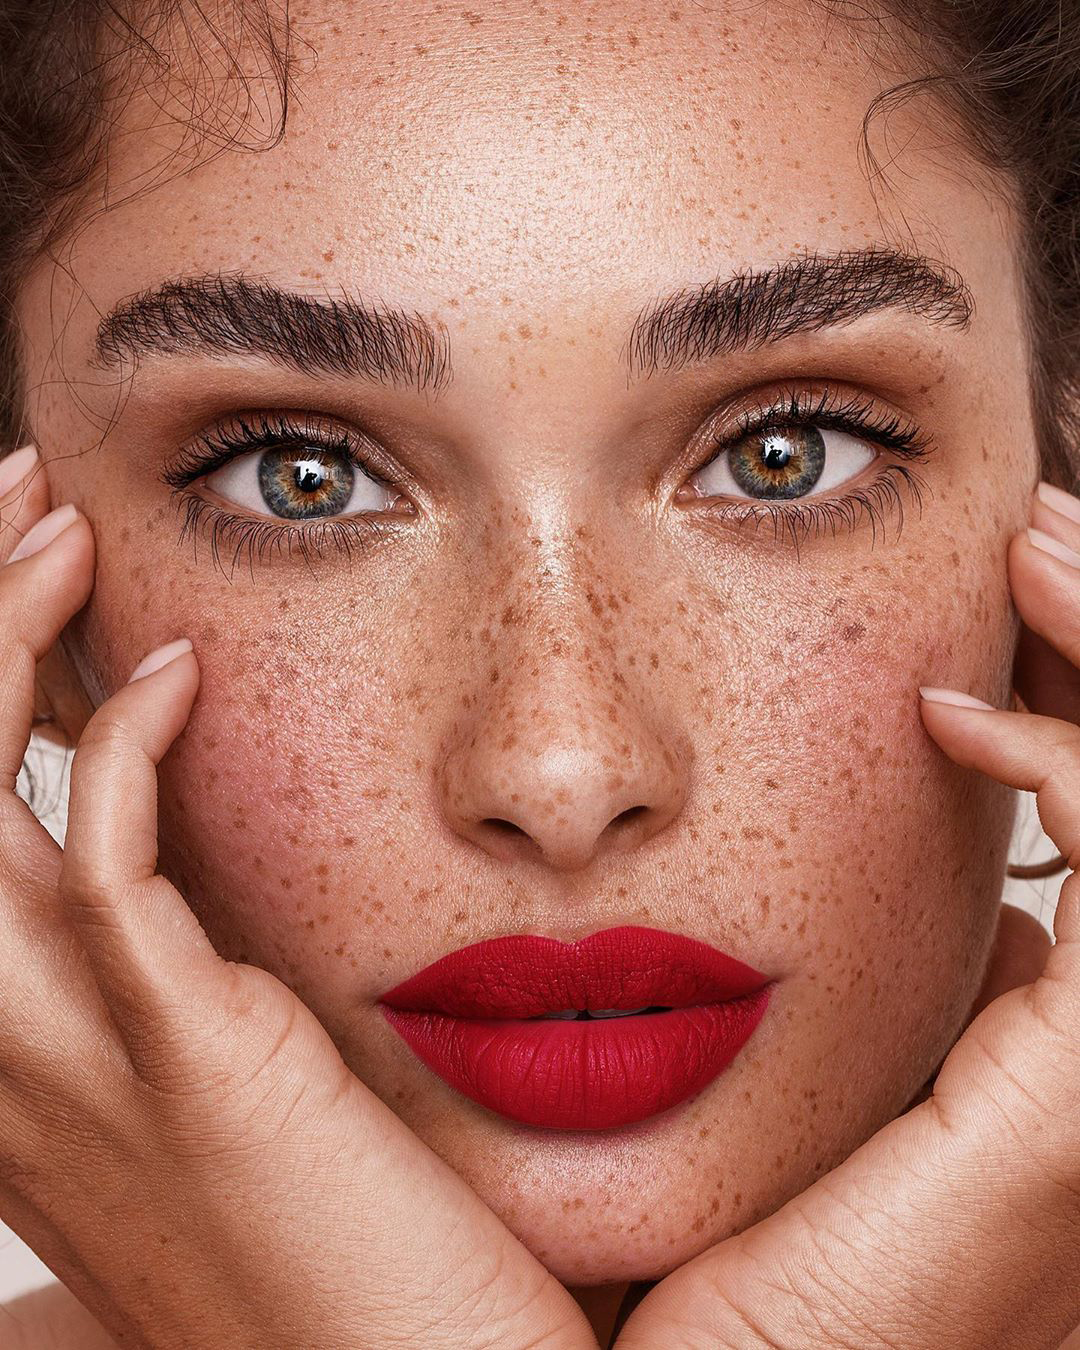 5 Common Skin Problems and How to Deal - Savoir Flair